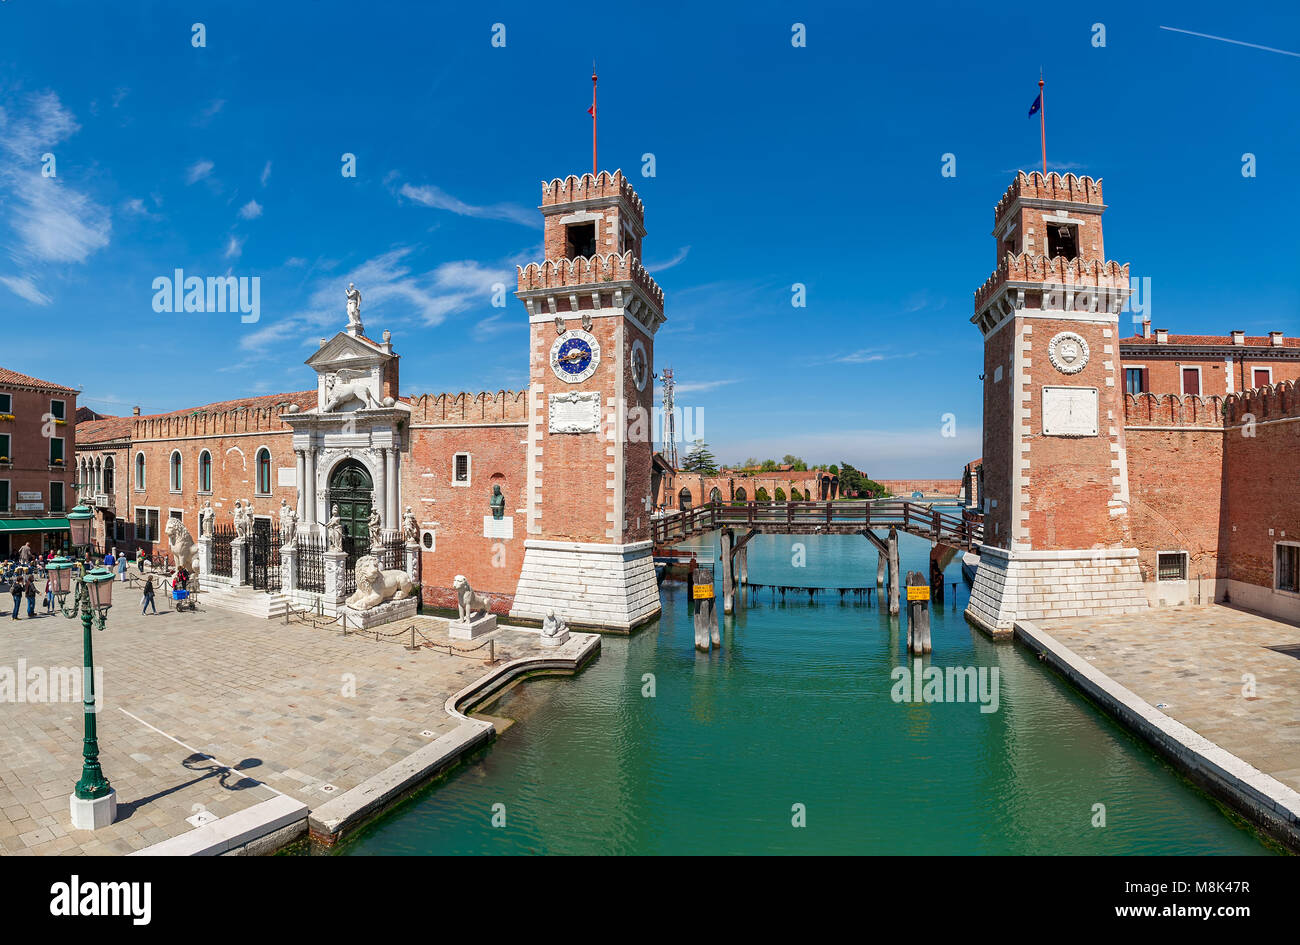 View of small piazza and towers off famous Venetian Arsenal - complex of former shipyards and armories, currently - Stock Image